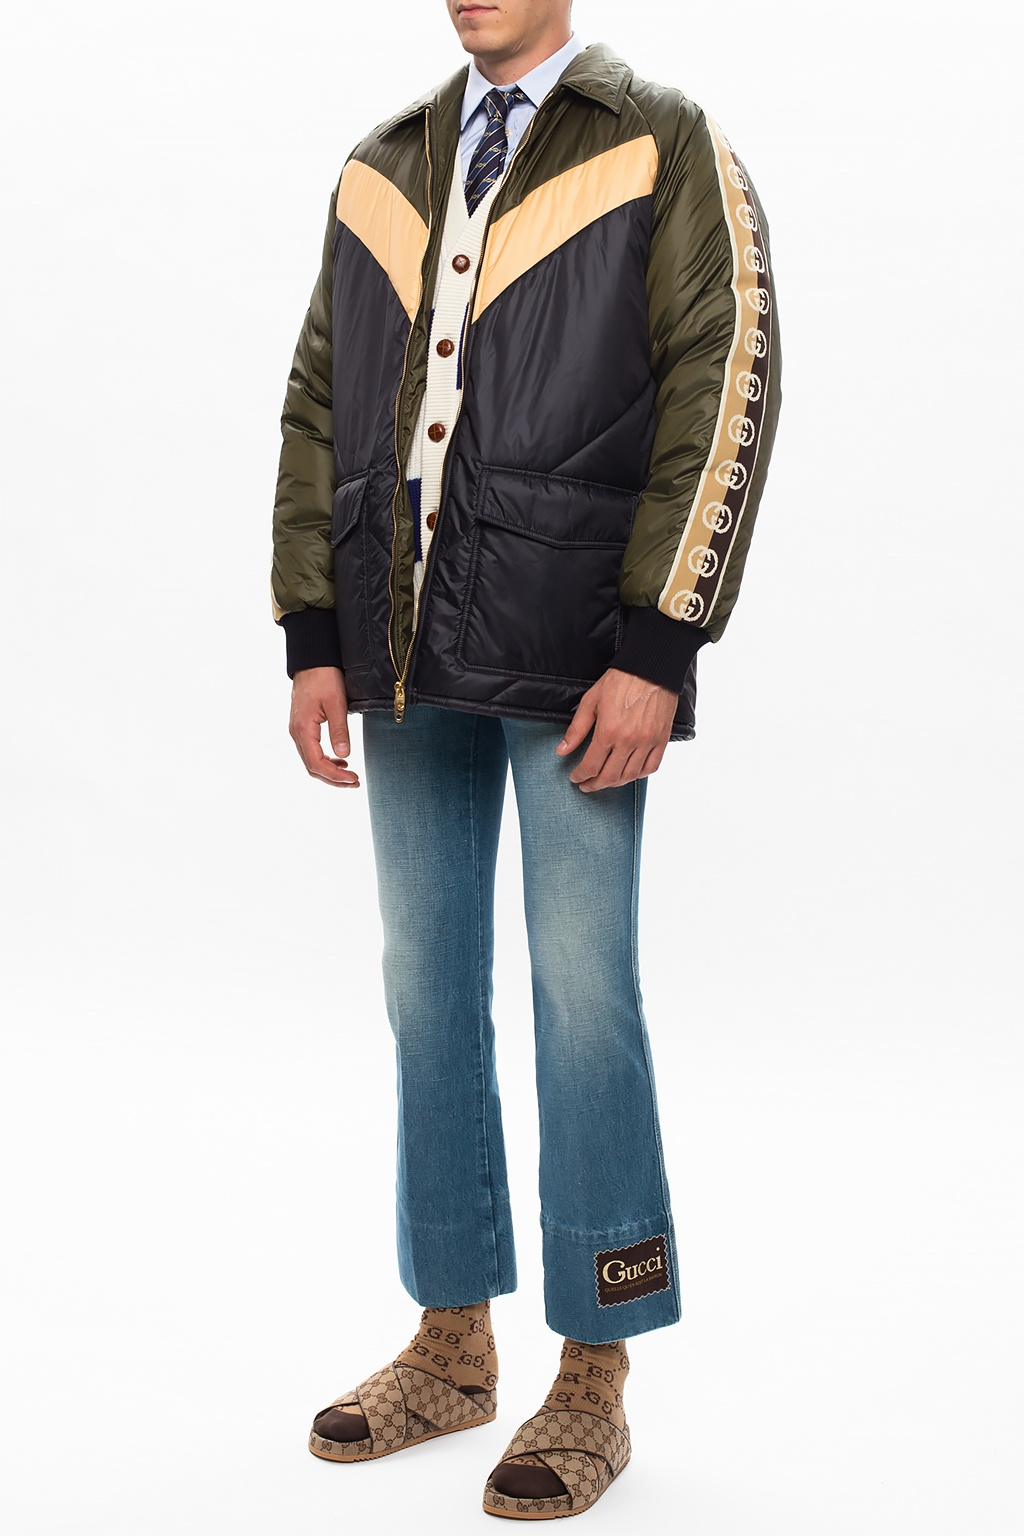 Gucci Jacket with logo